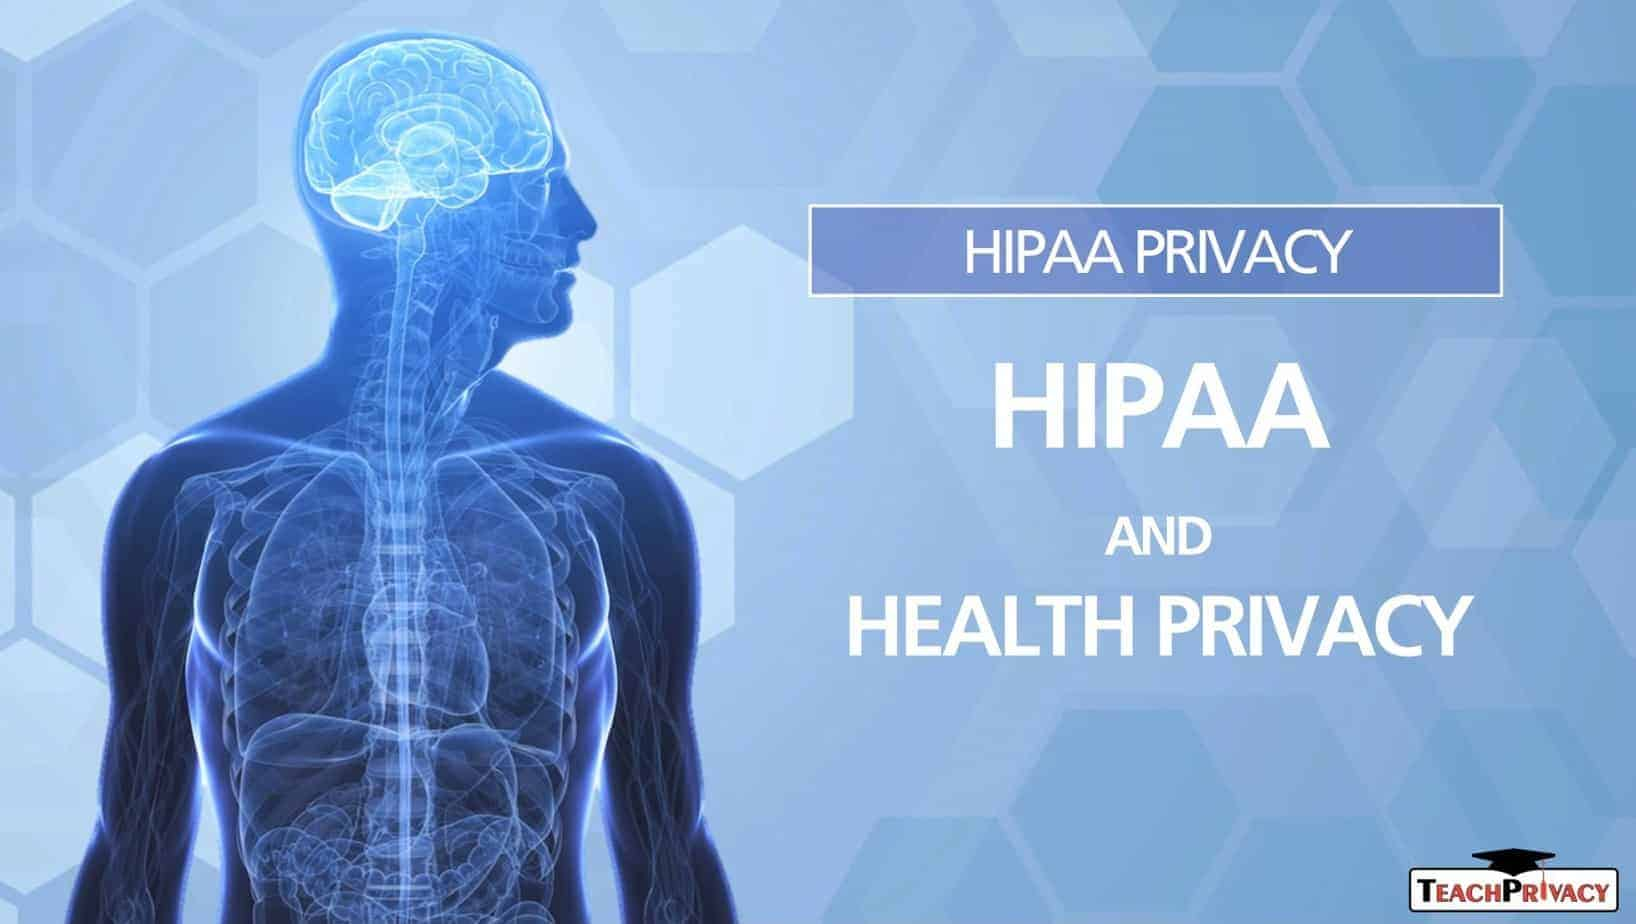 HIPAA Training - HIPAA and Health Privacy